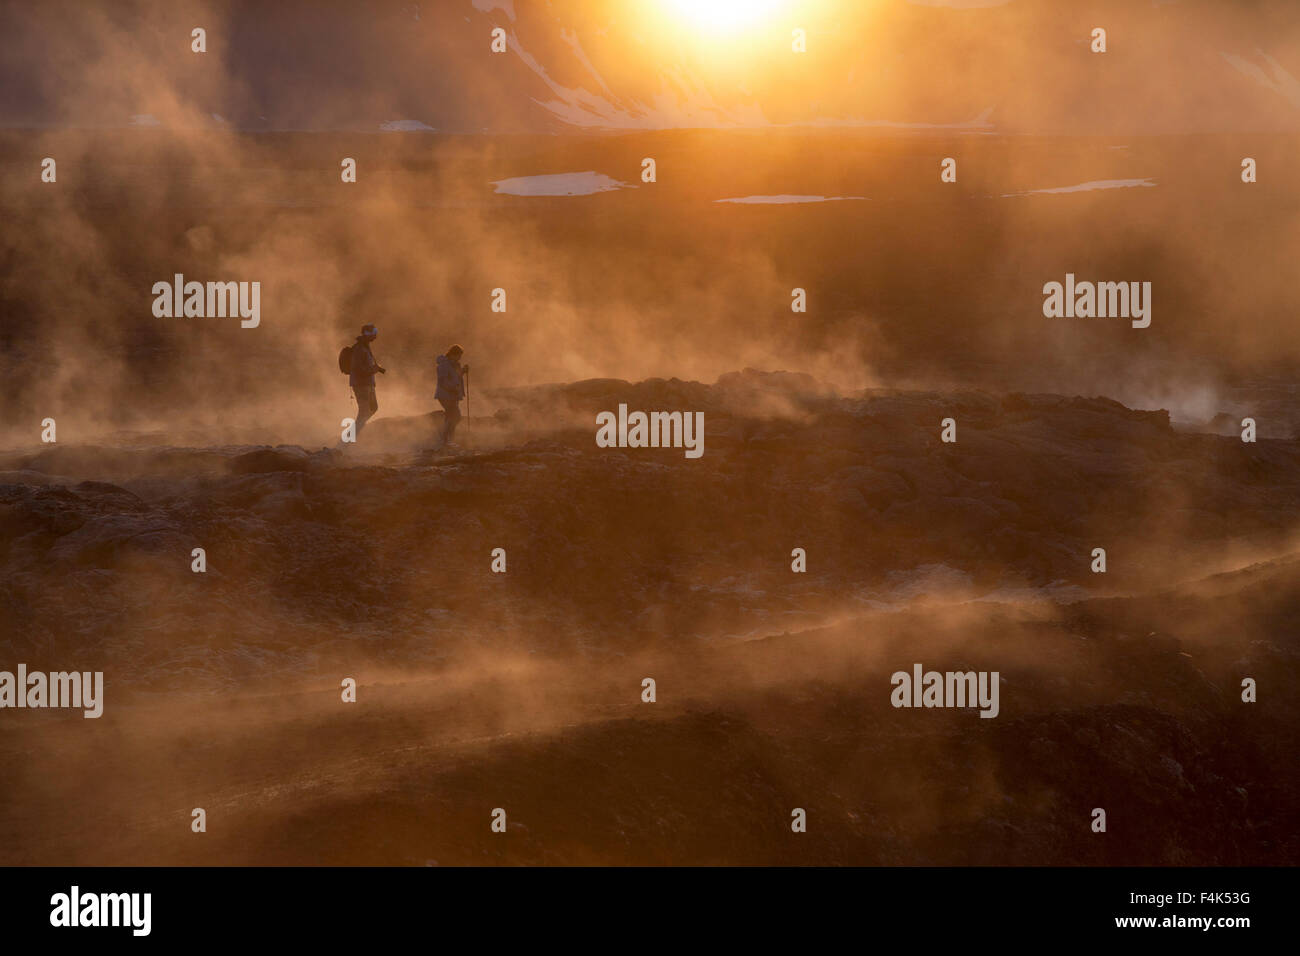 Sunset hikers amid the smouldering lava field at Leirhnjukur, Krafla volcano, Myvatn, Nordhurland Eystra, Iceland. Stock Photo